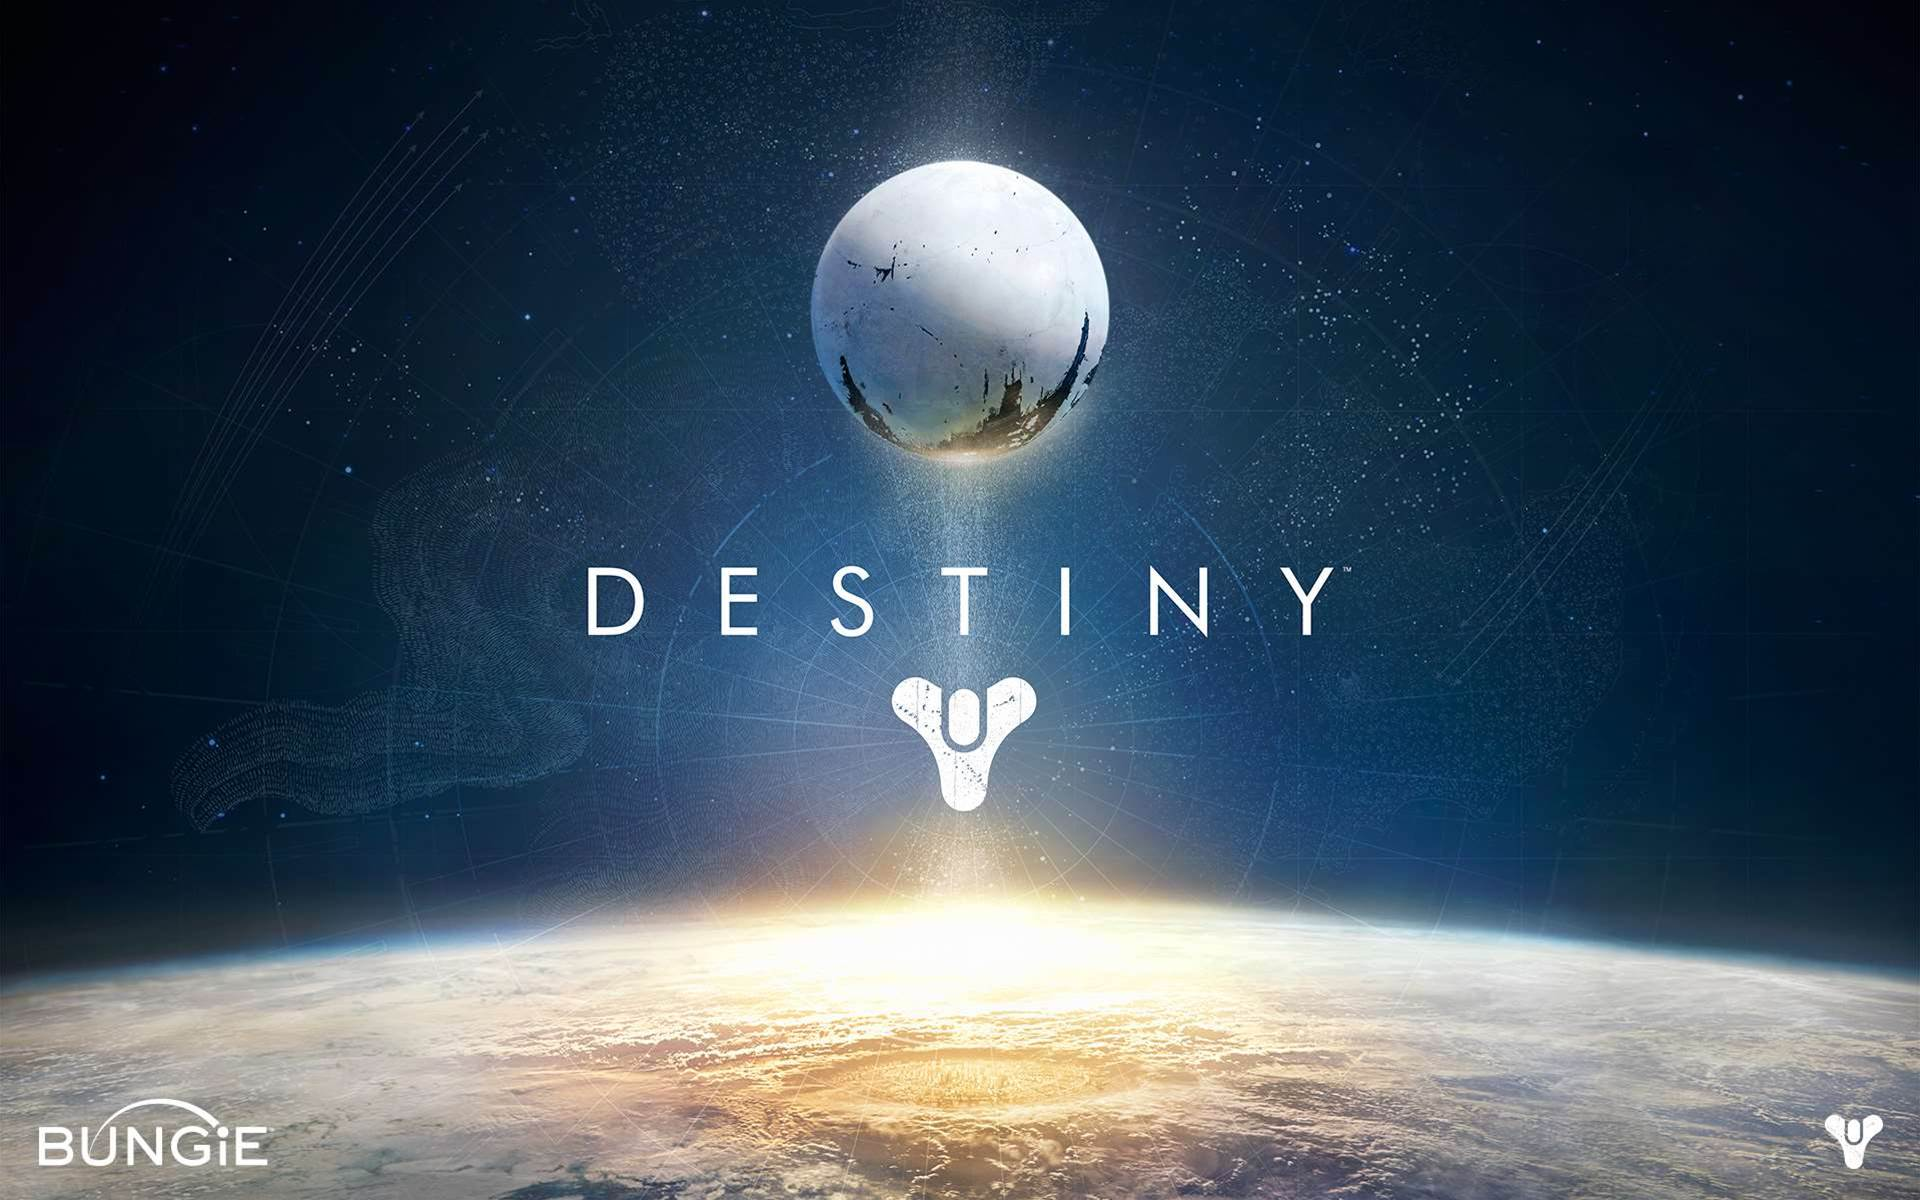 Trick those friendly skies with new Destiny vehicle